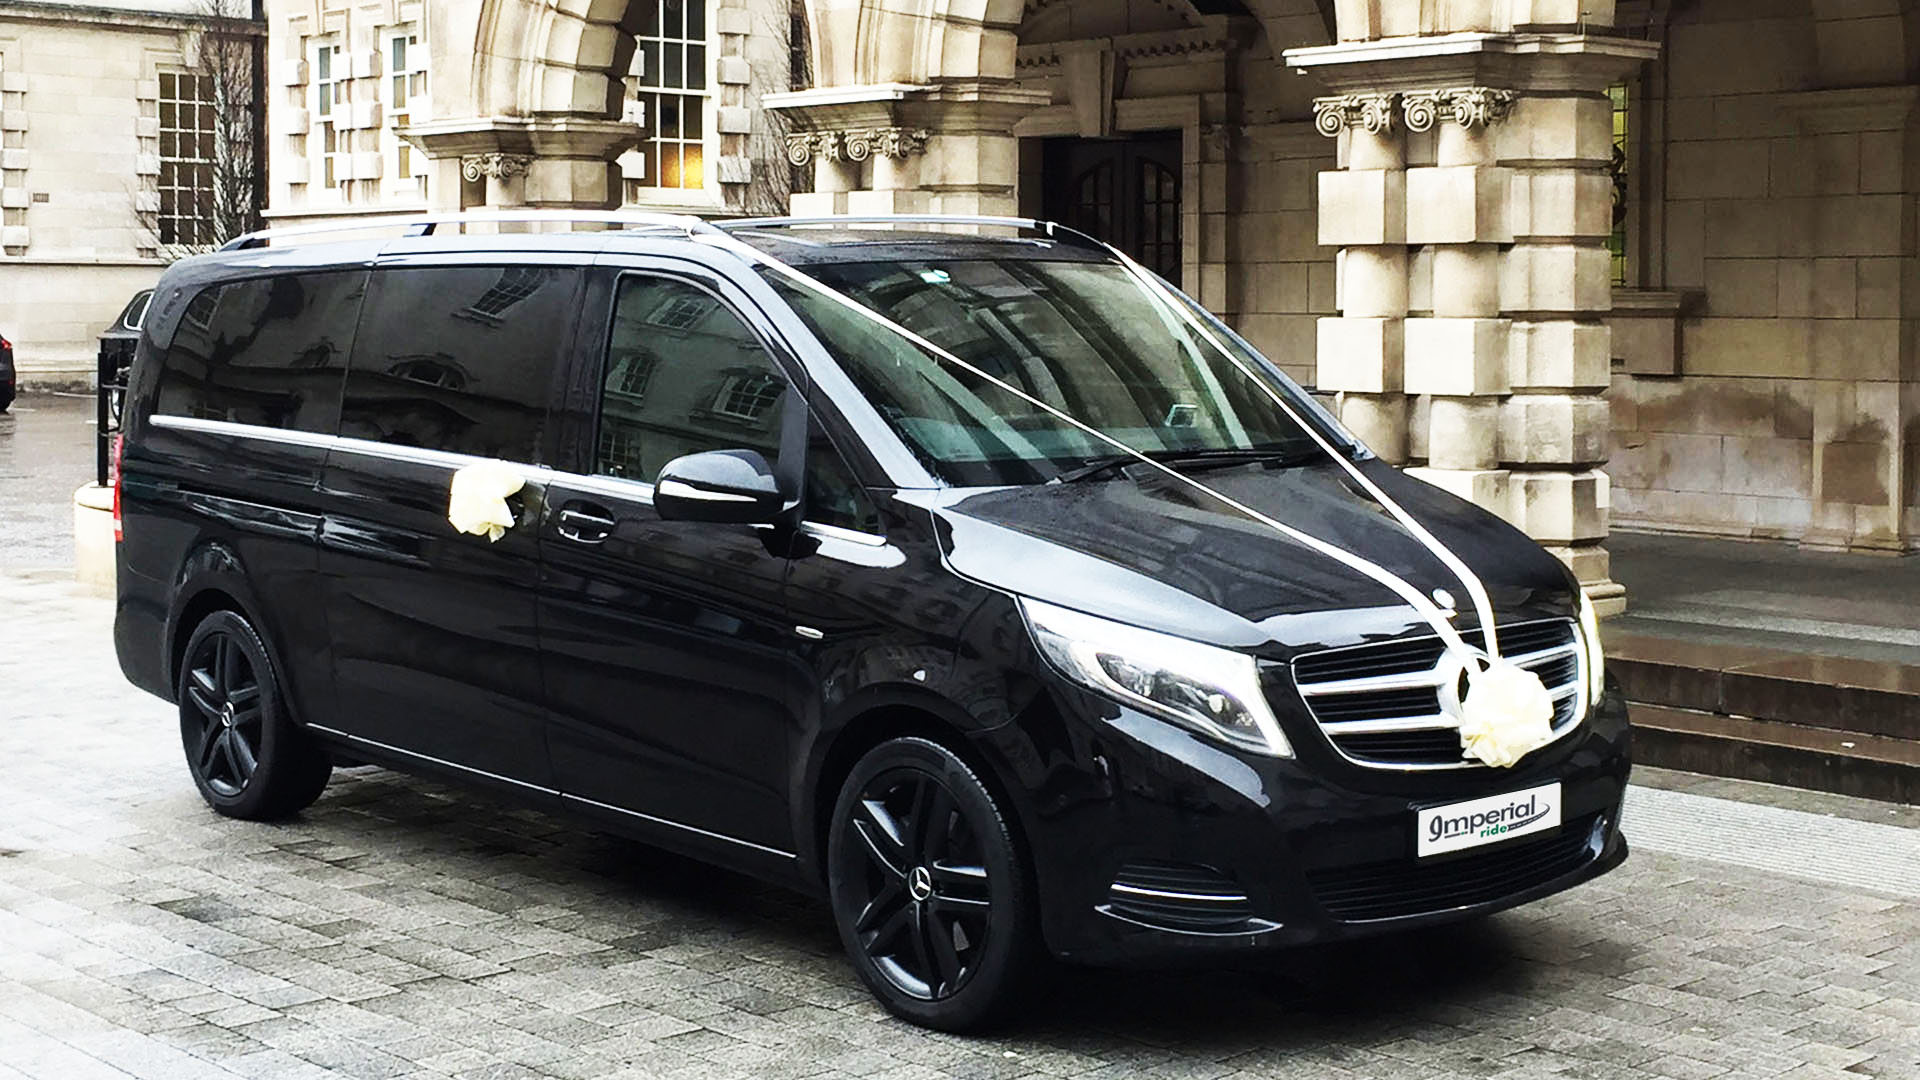 v-class-wedding-hire-in-wandsworth